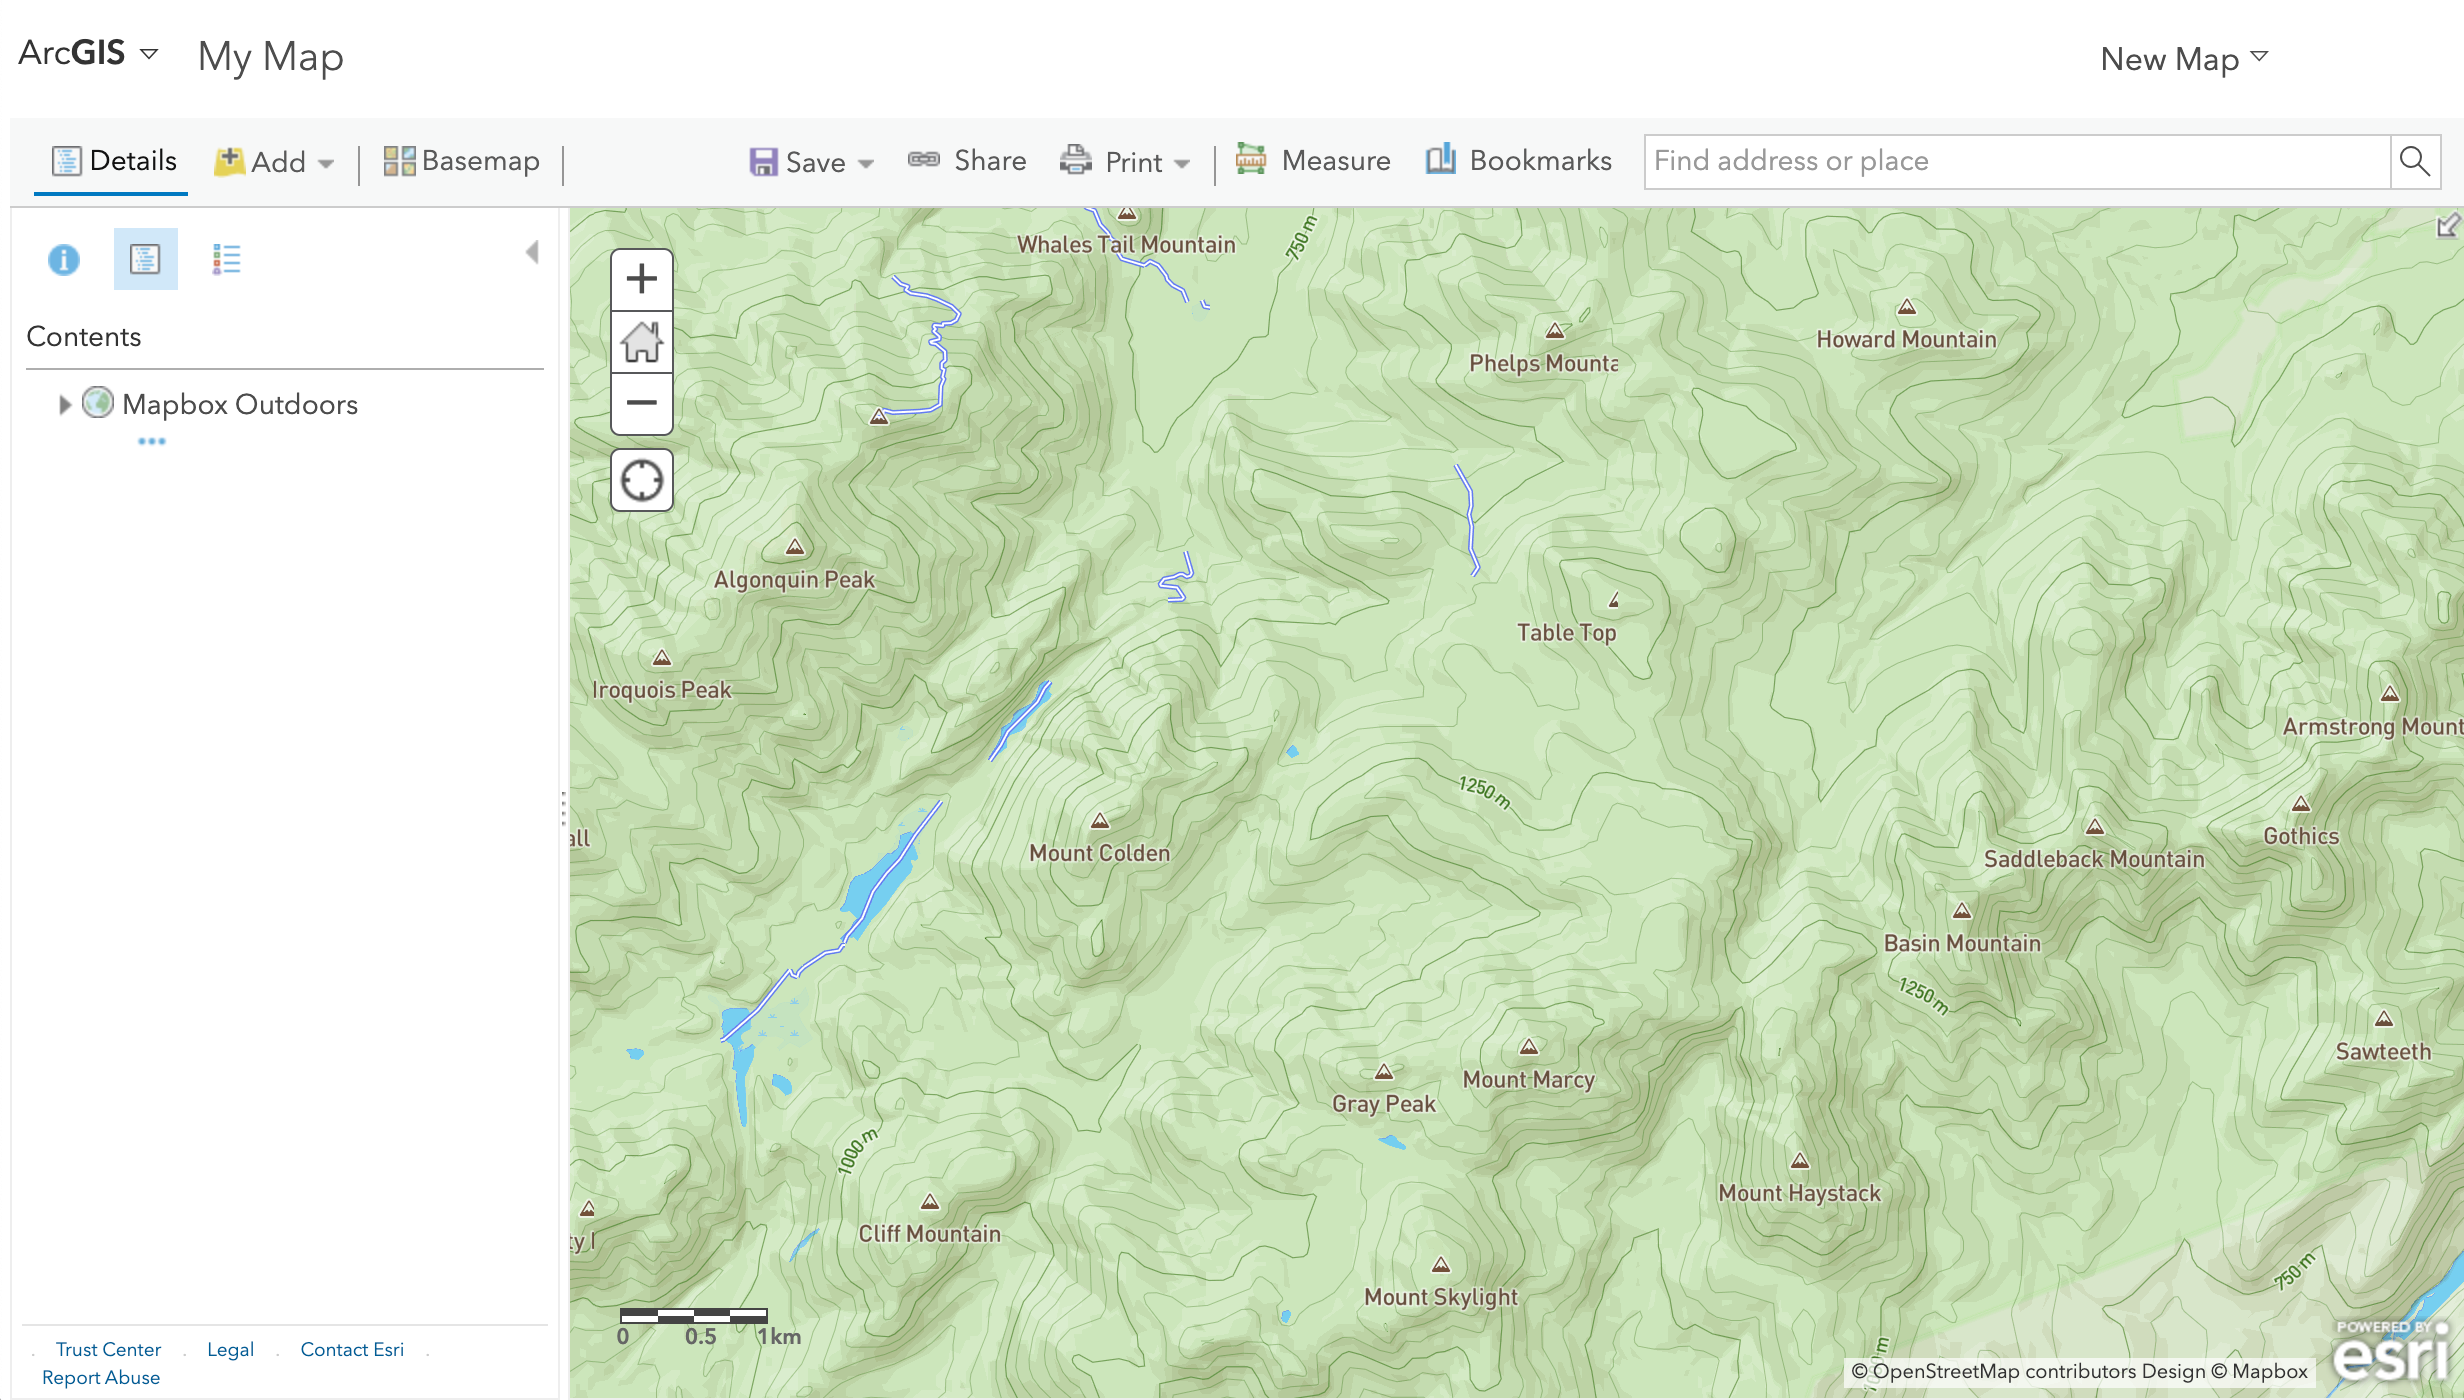 Bring Mapbox data into ArcGIS - Points of interest